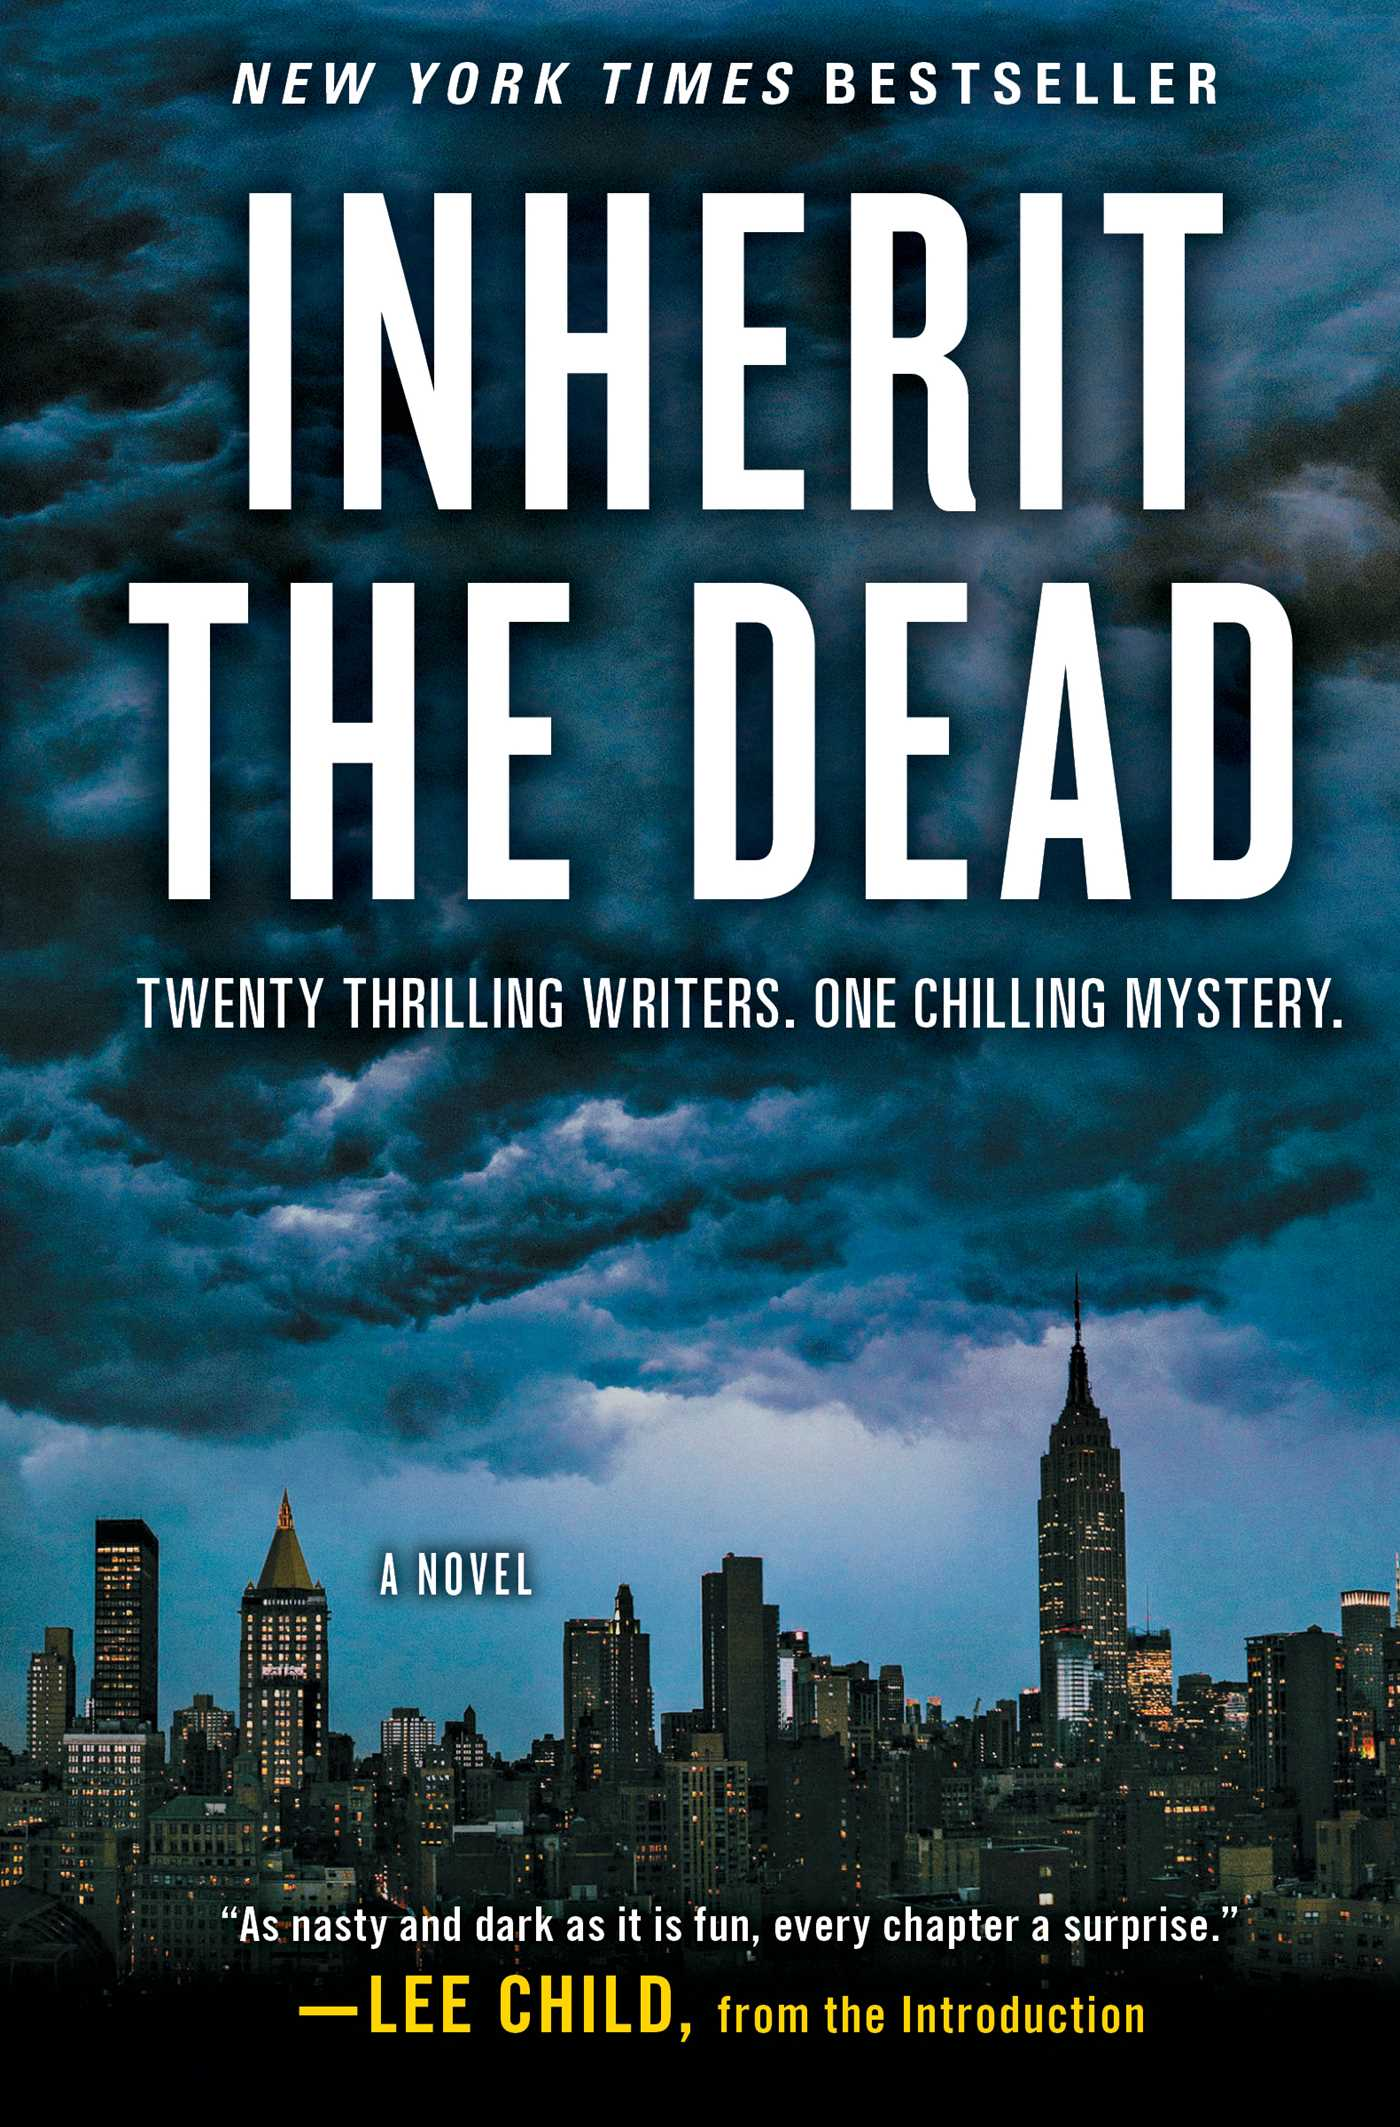 Inherit-the-dead-9781451684773_hr